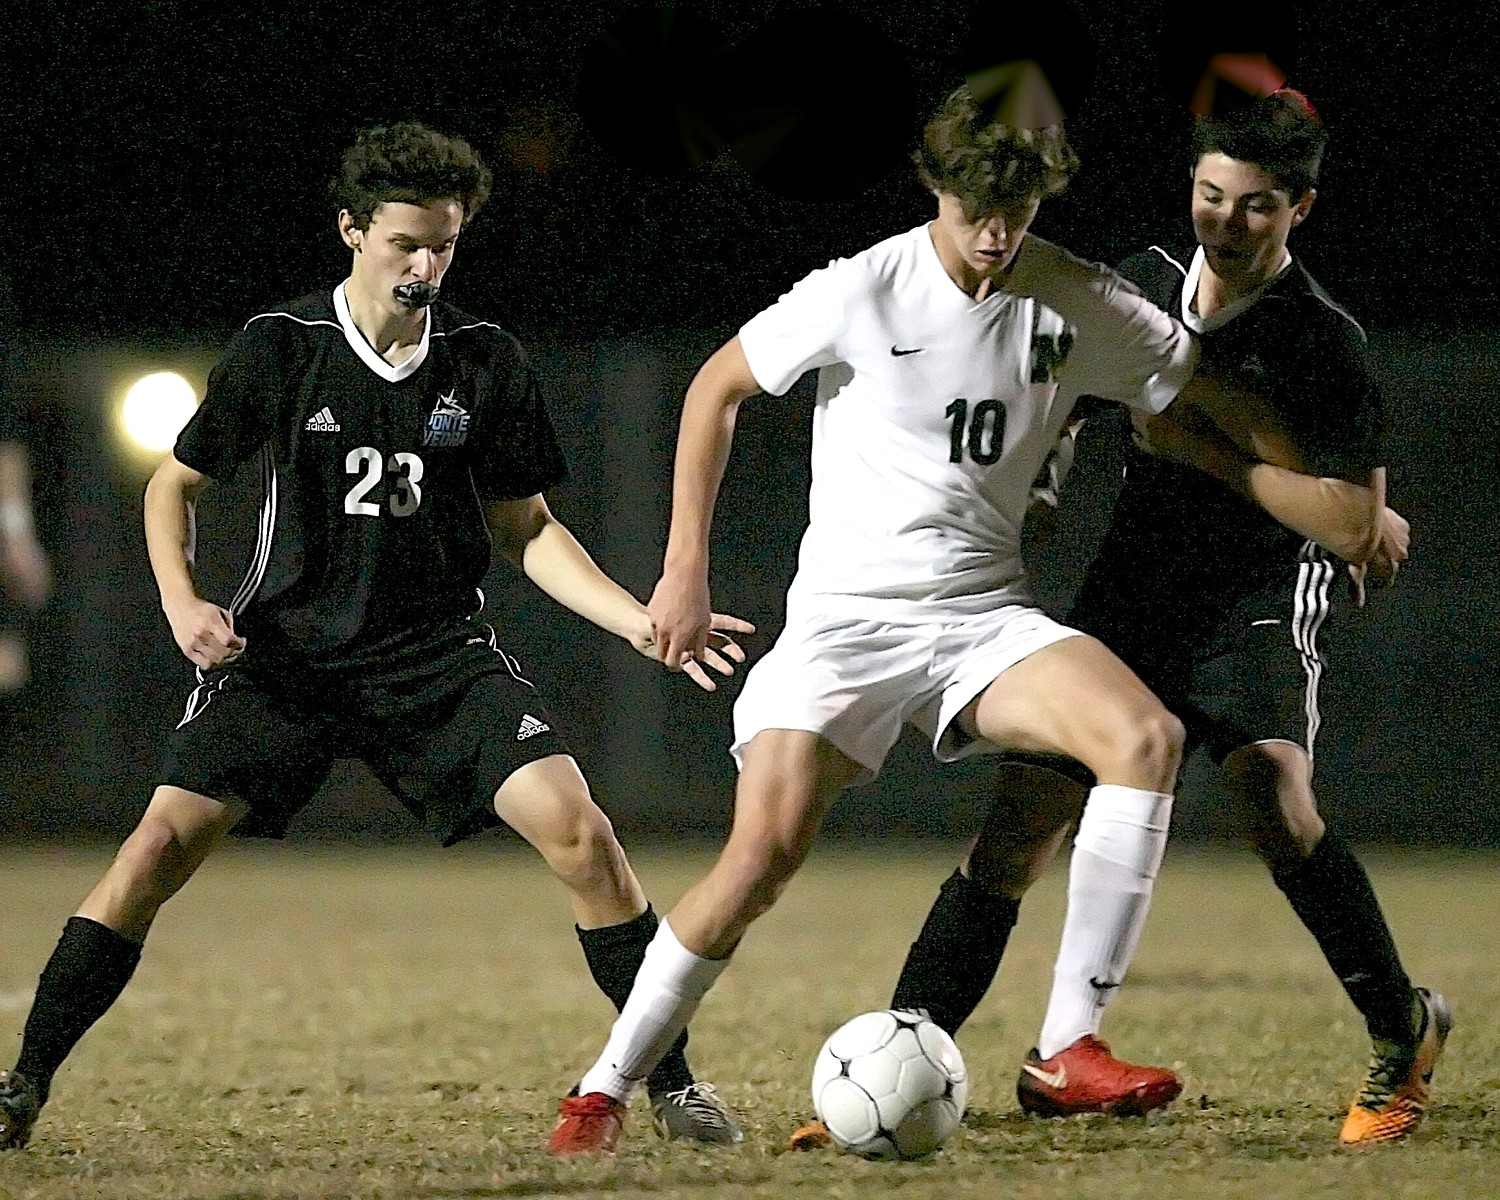 James Rossi (23) and Nico Gosendi (17) of the Sharks defend a Nease player.